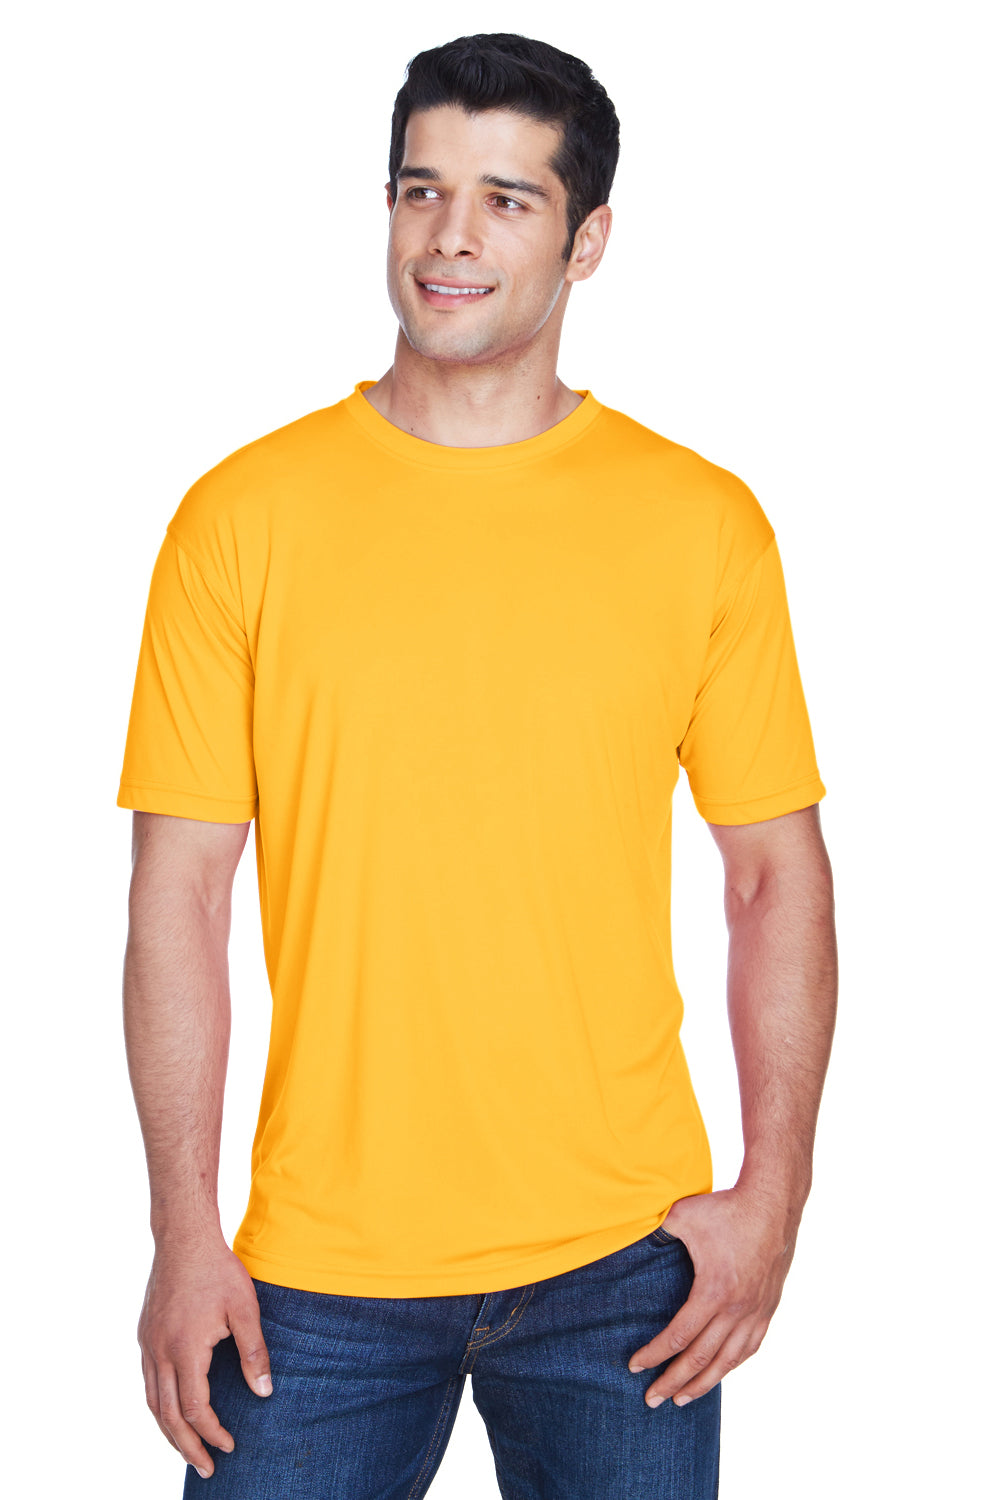 UltraClub 8420 Mens Cool & Dry Performance Moisture Wicking Short Sleeve Crewneck T-Shirt Gold Front